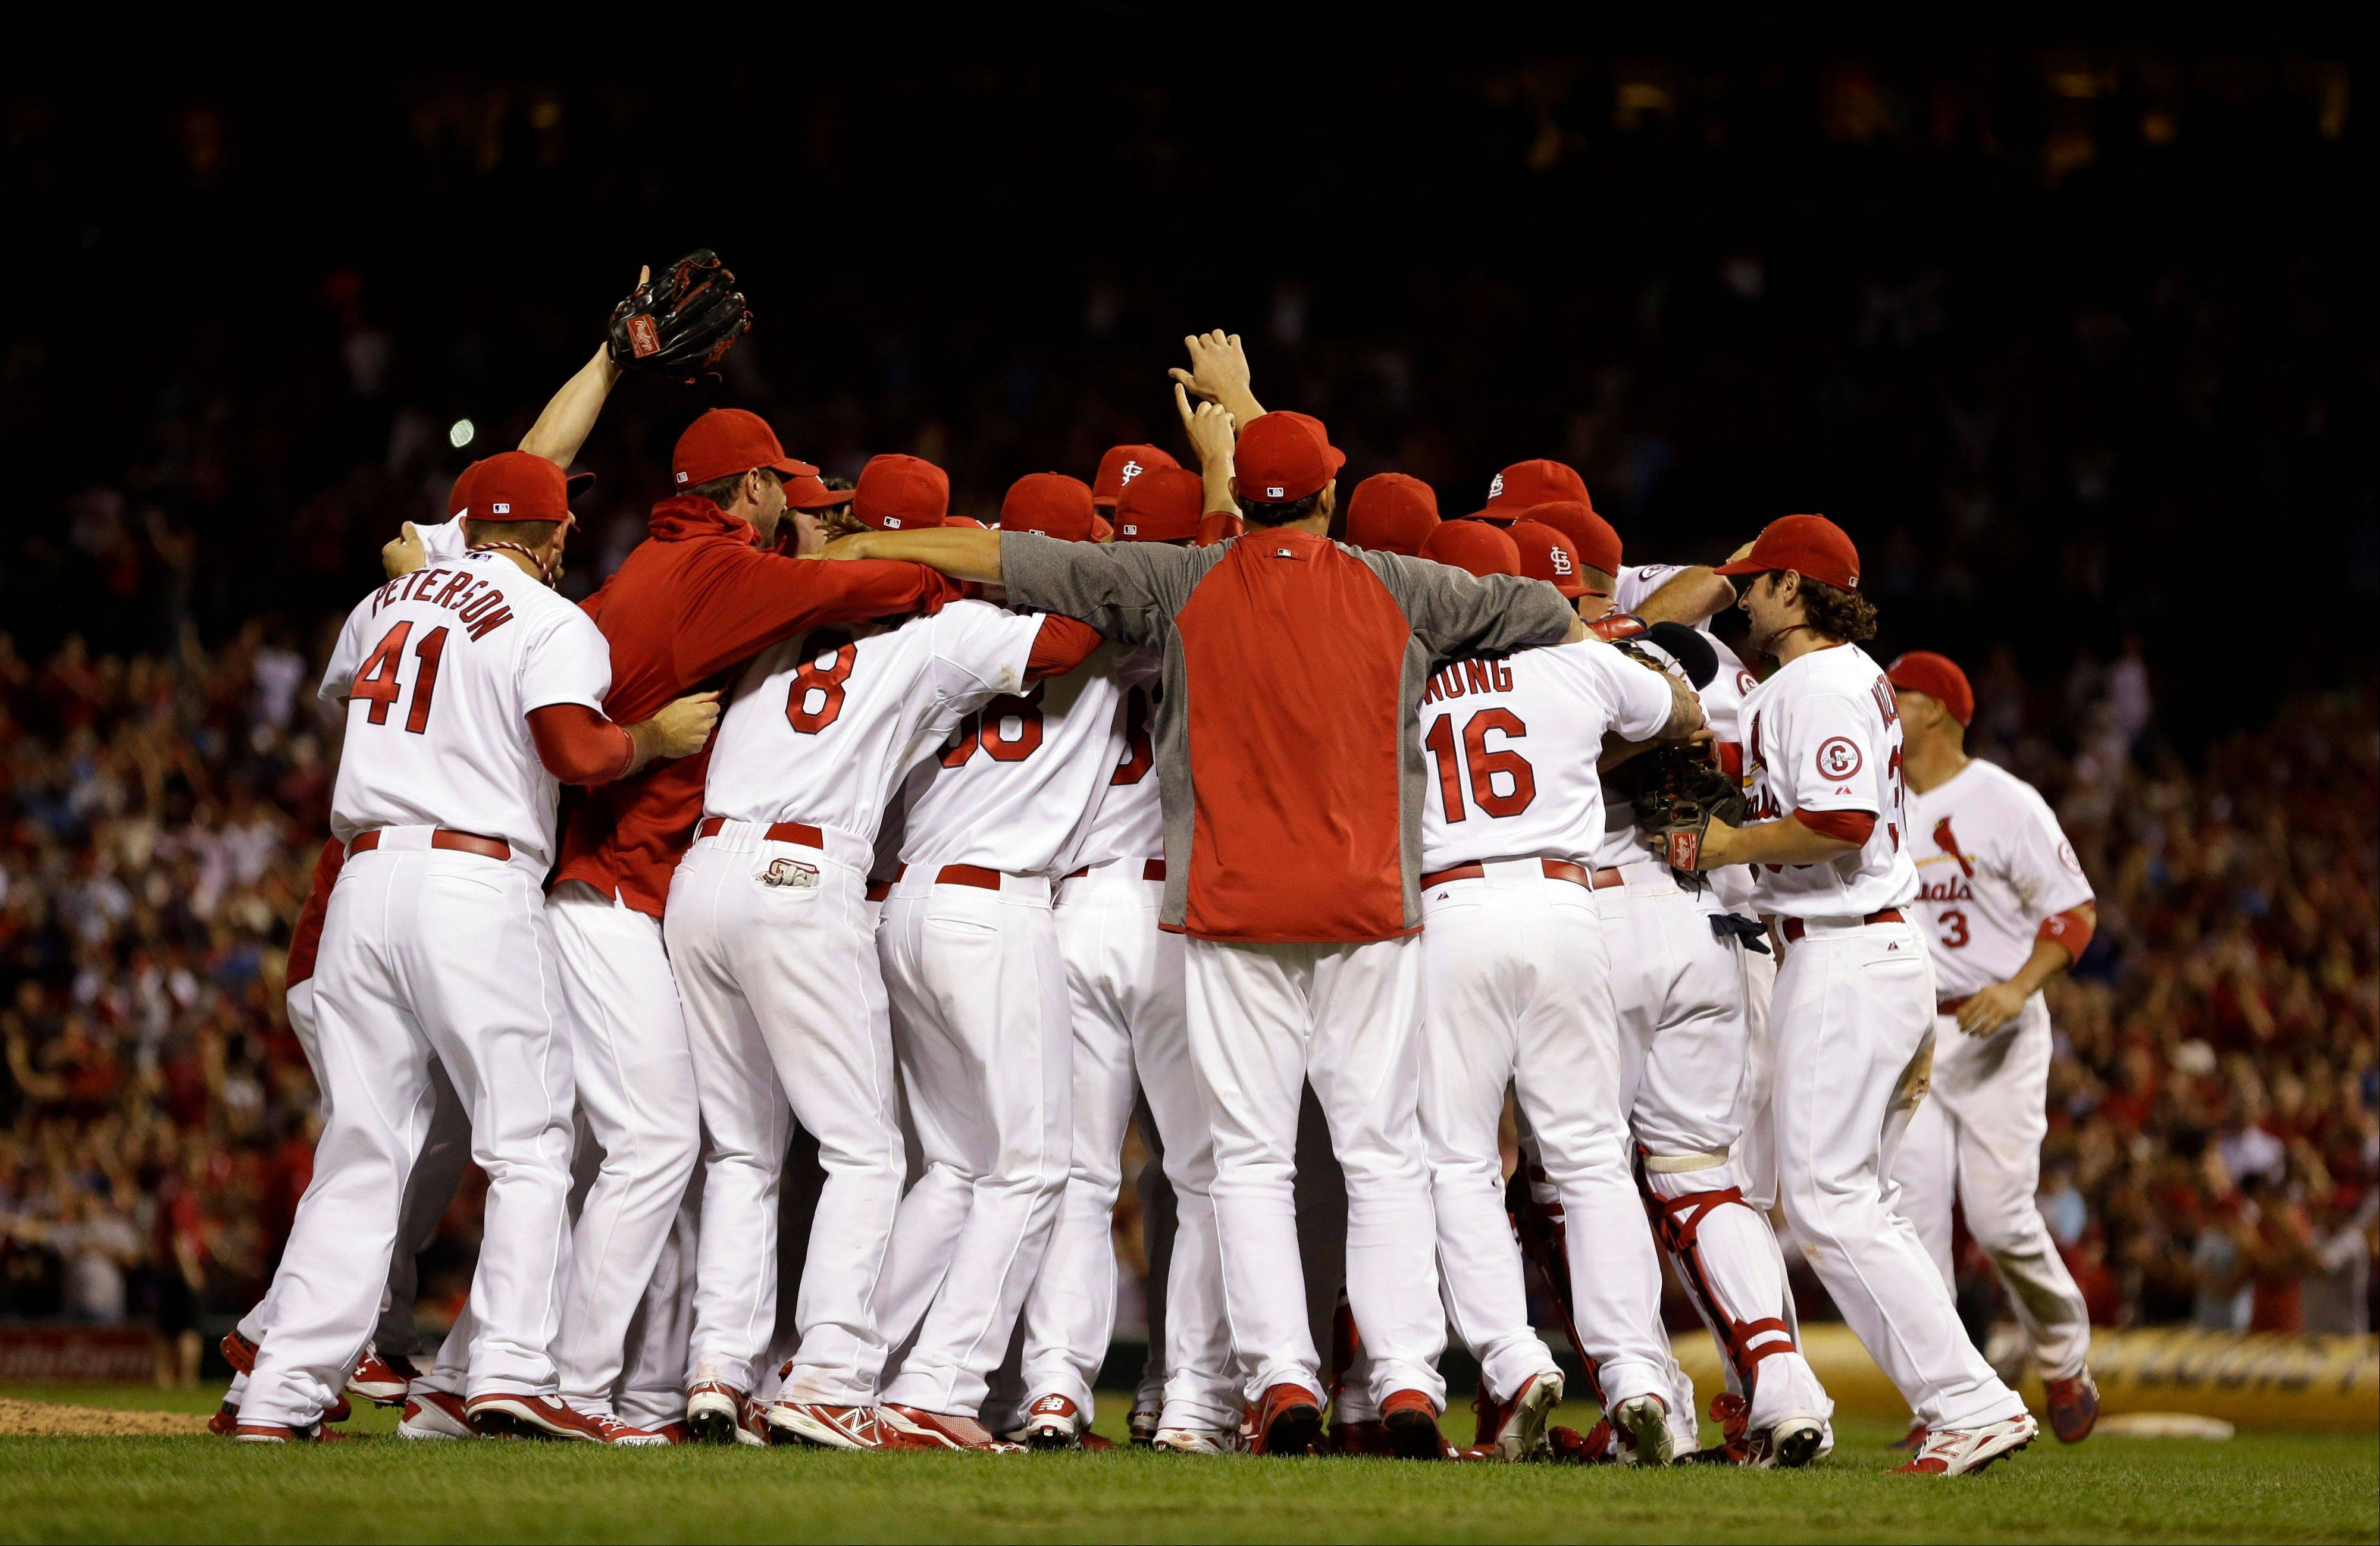 Members of the St. Louis Cardinals celebrate after beating the Chicago Cubs Friday night at home to clinch the NL Central title.